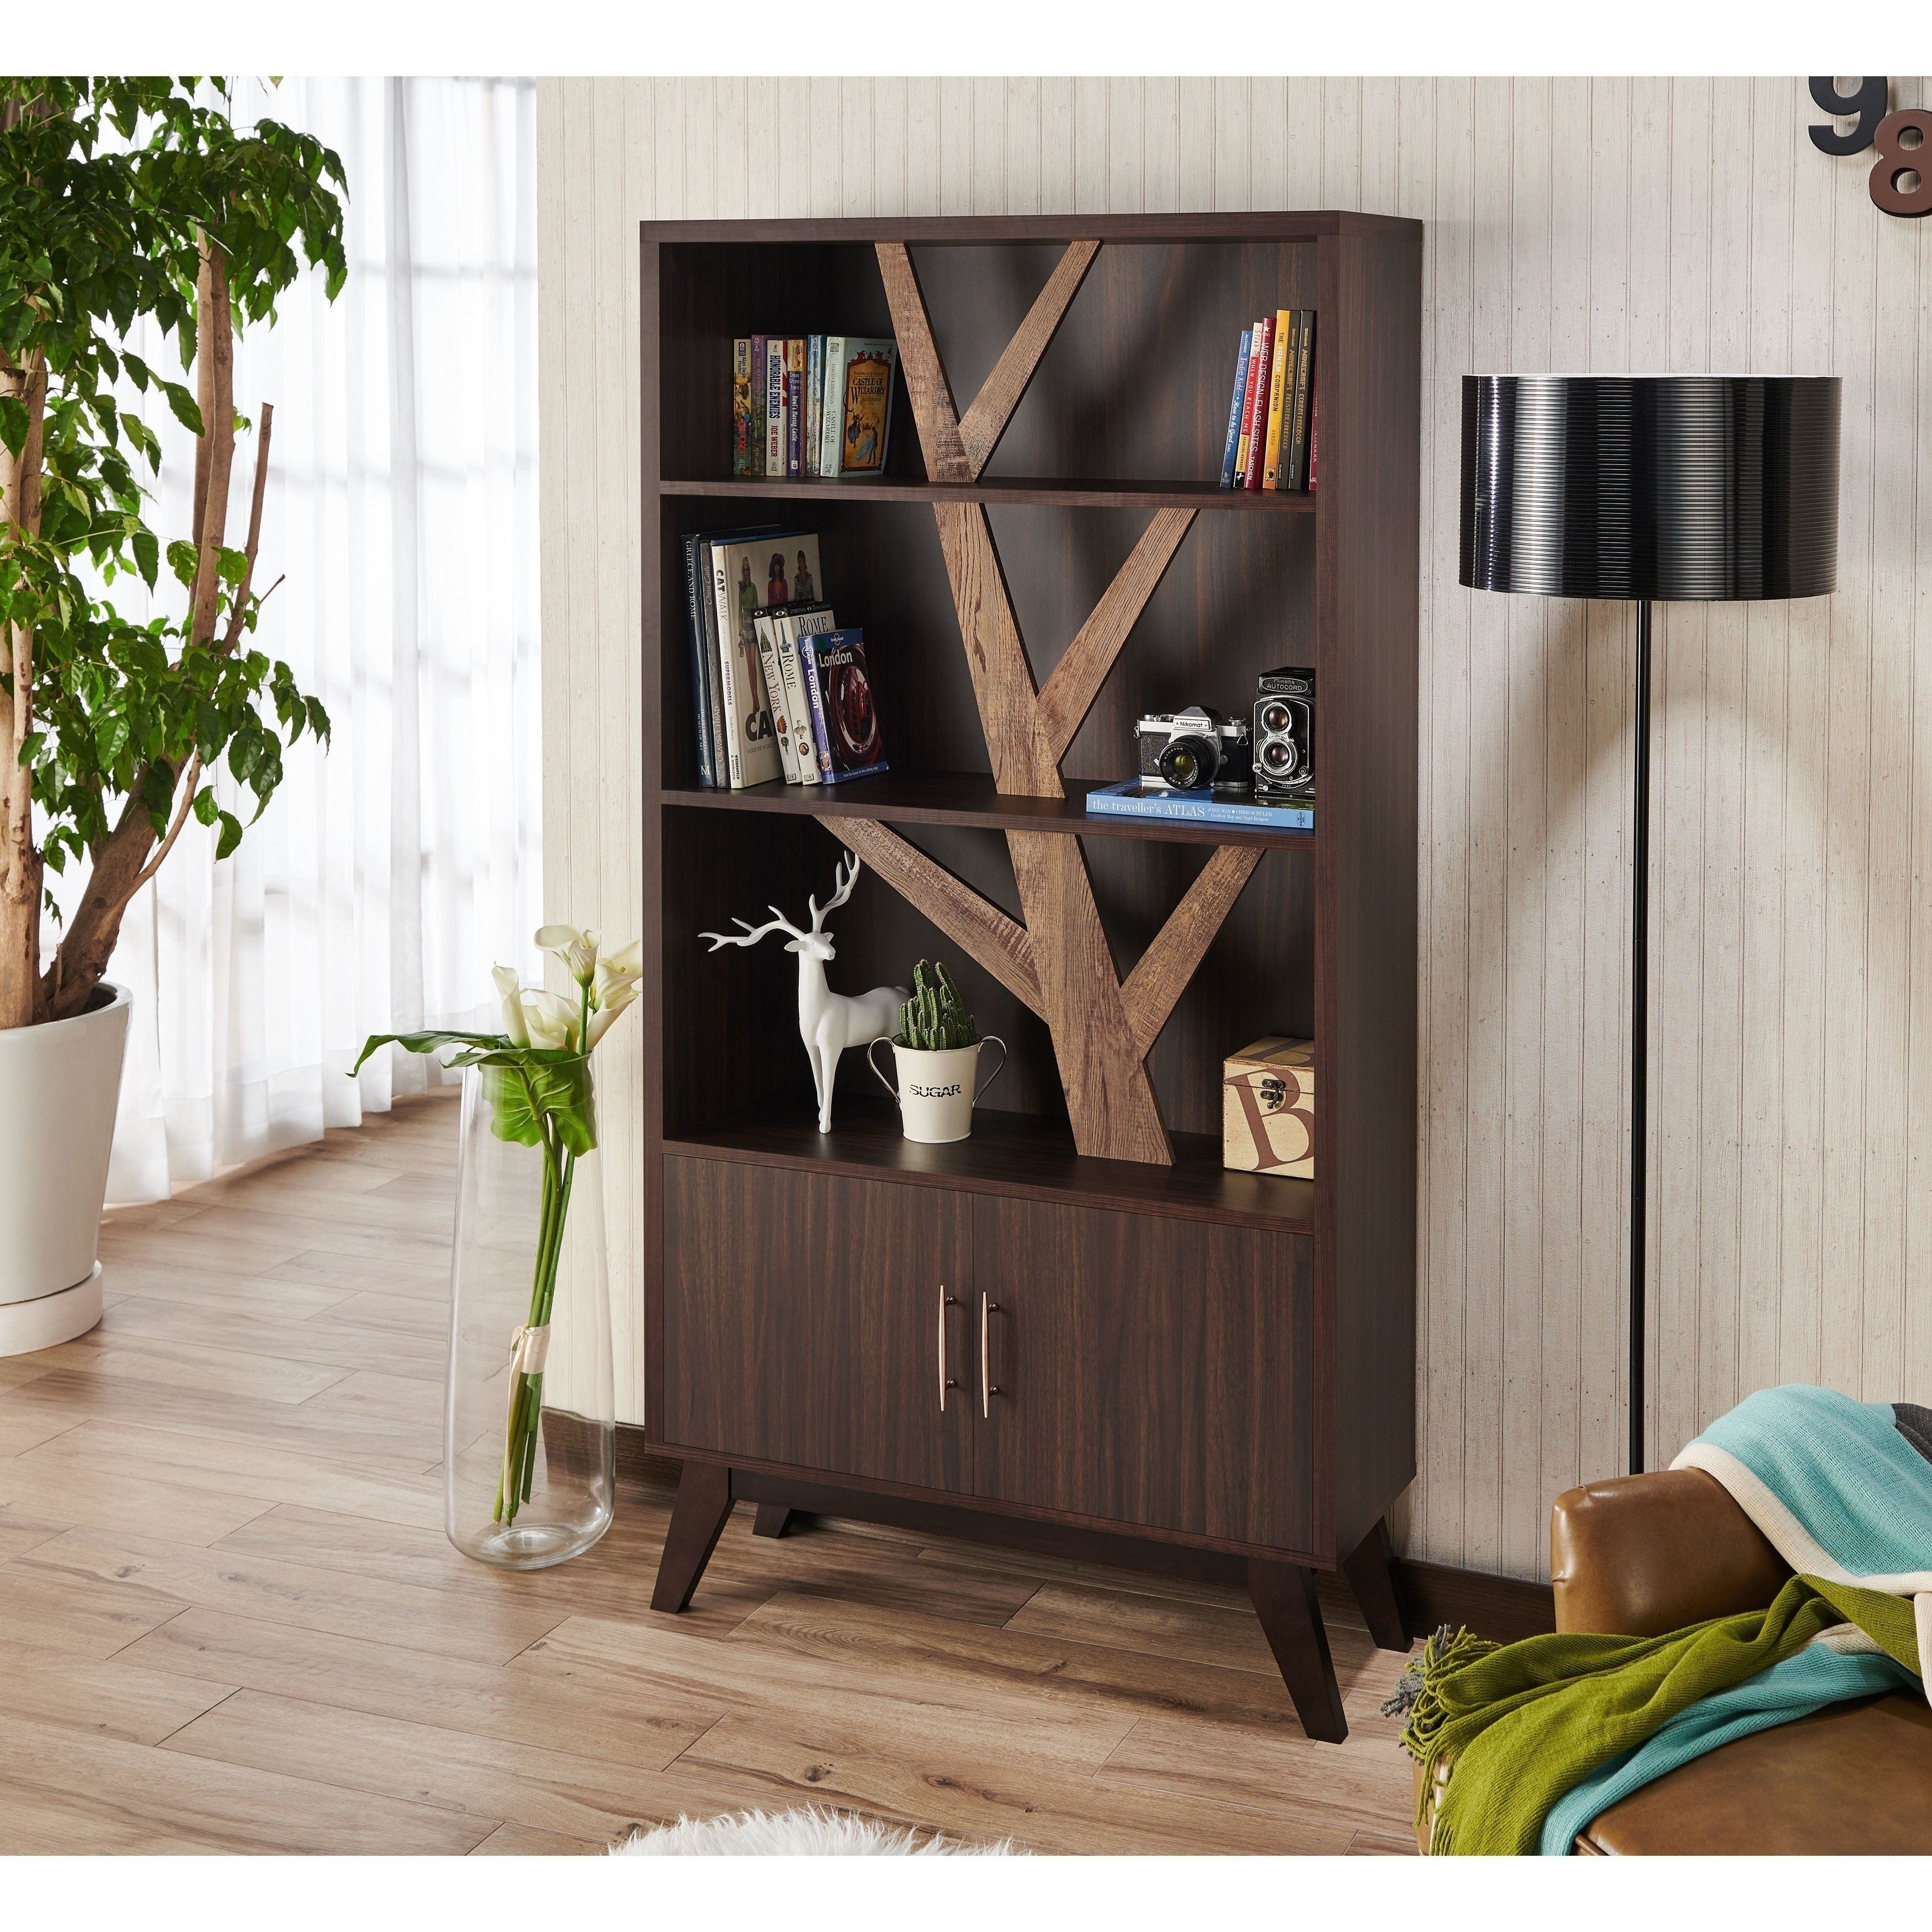 Details About Miyago Rustic Wenge Bookcase With Cabinet By Foa Wenge N A